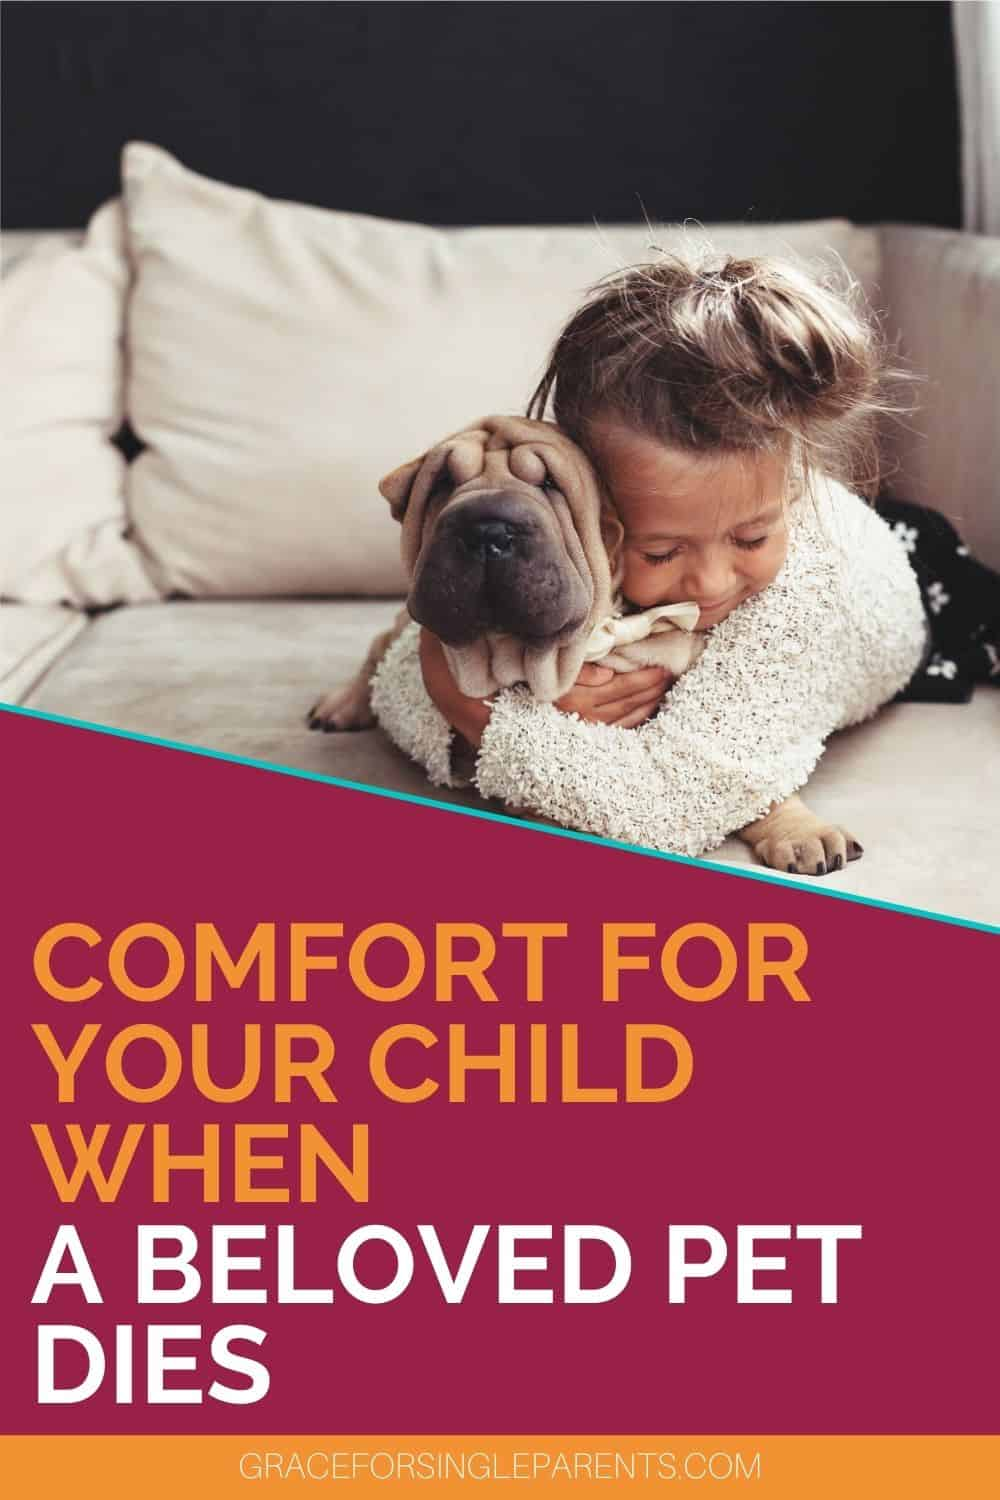 How to Help Your Child Through the Death of a Beloved Pet